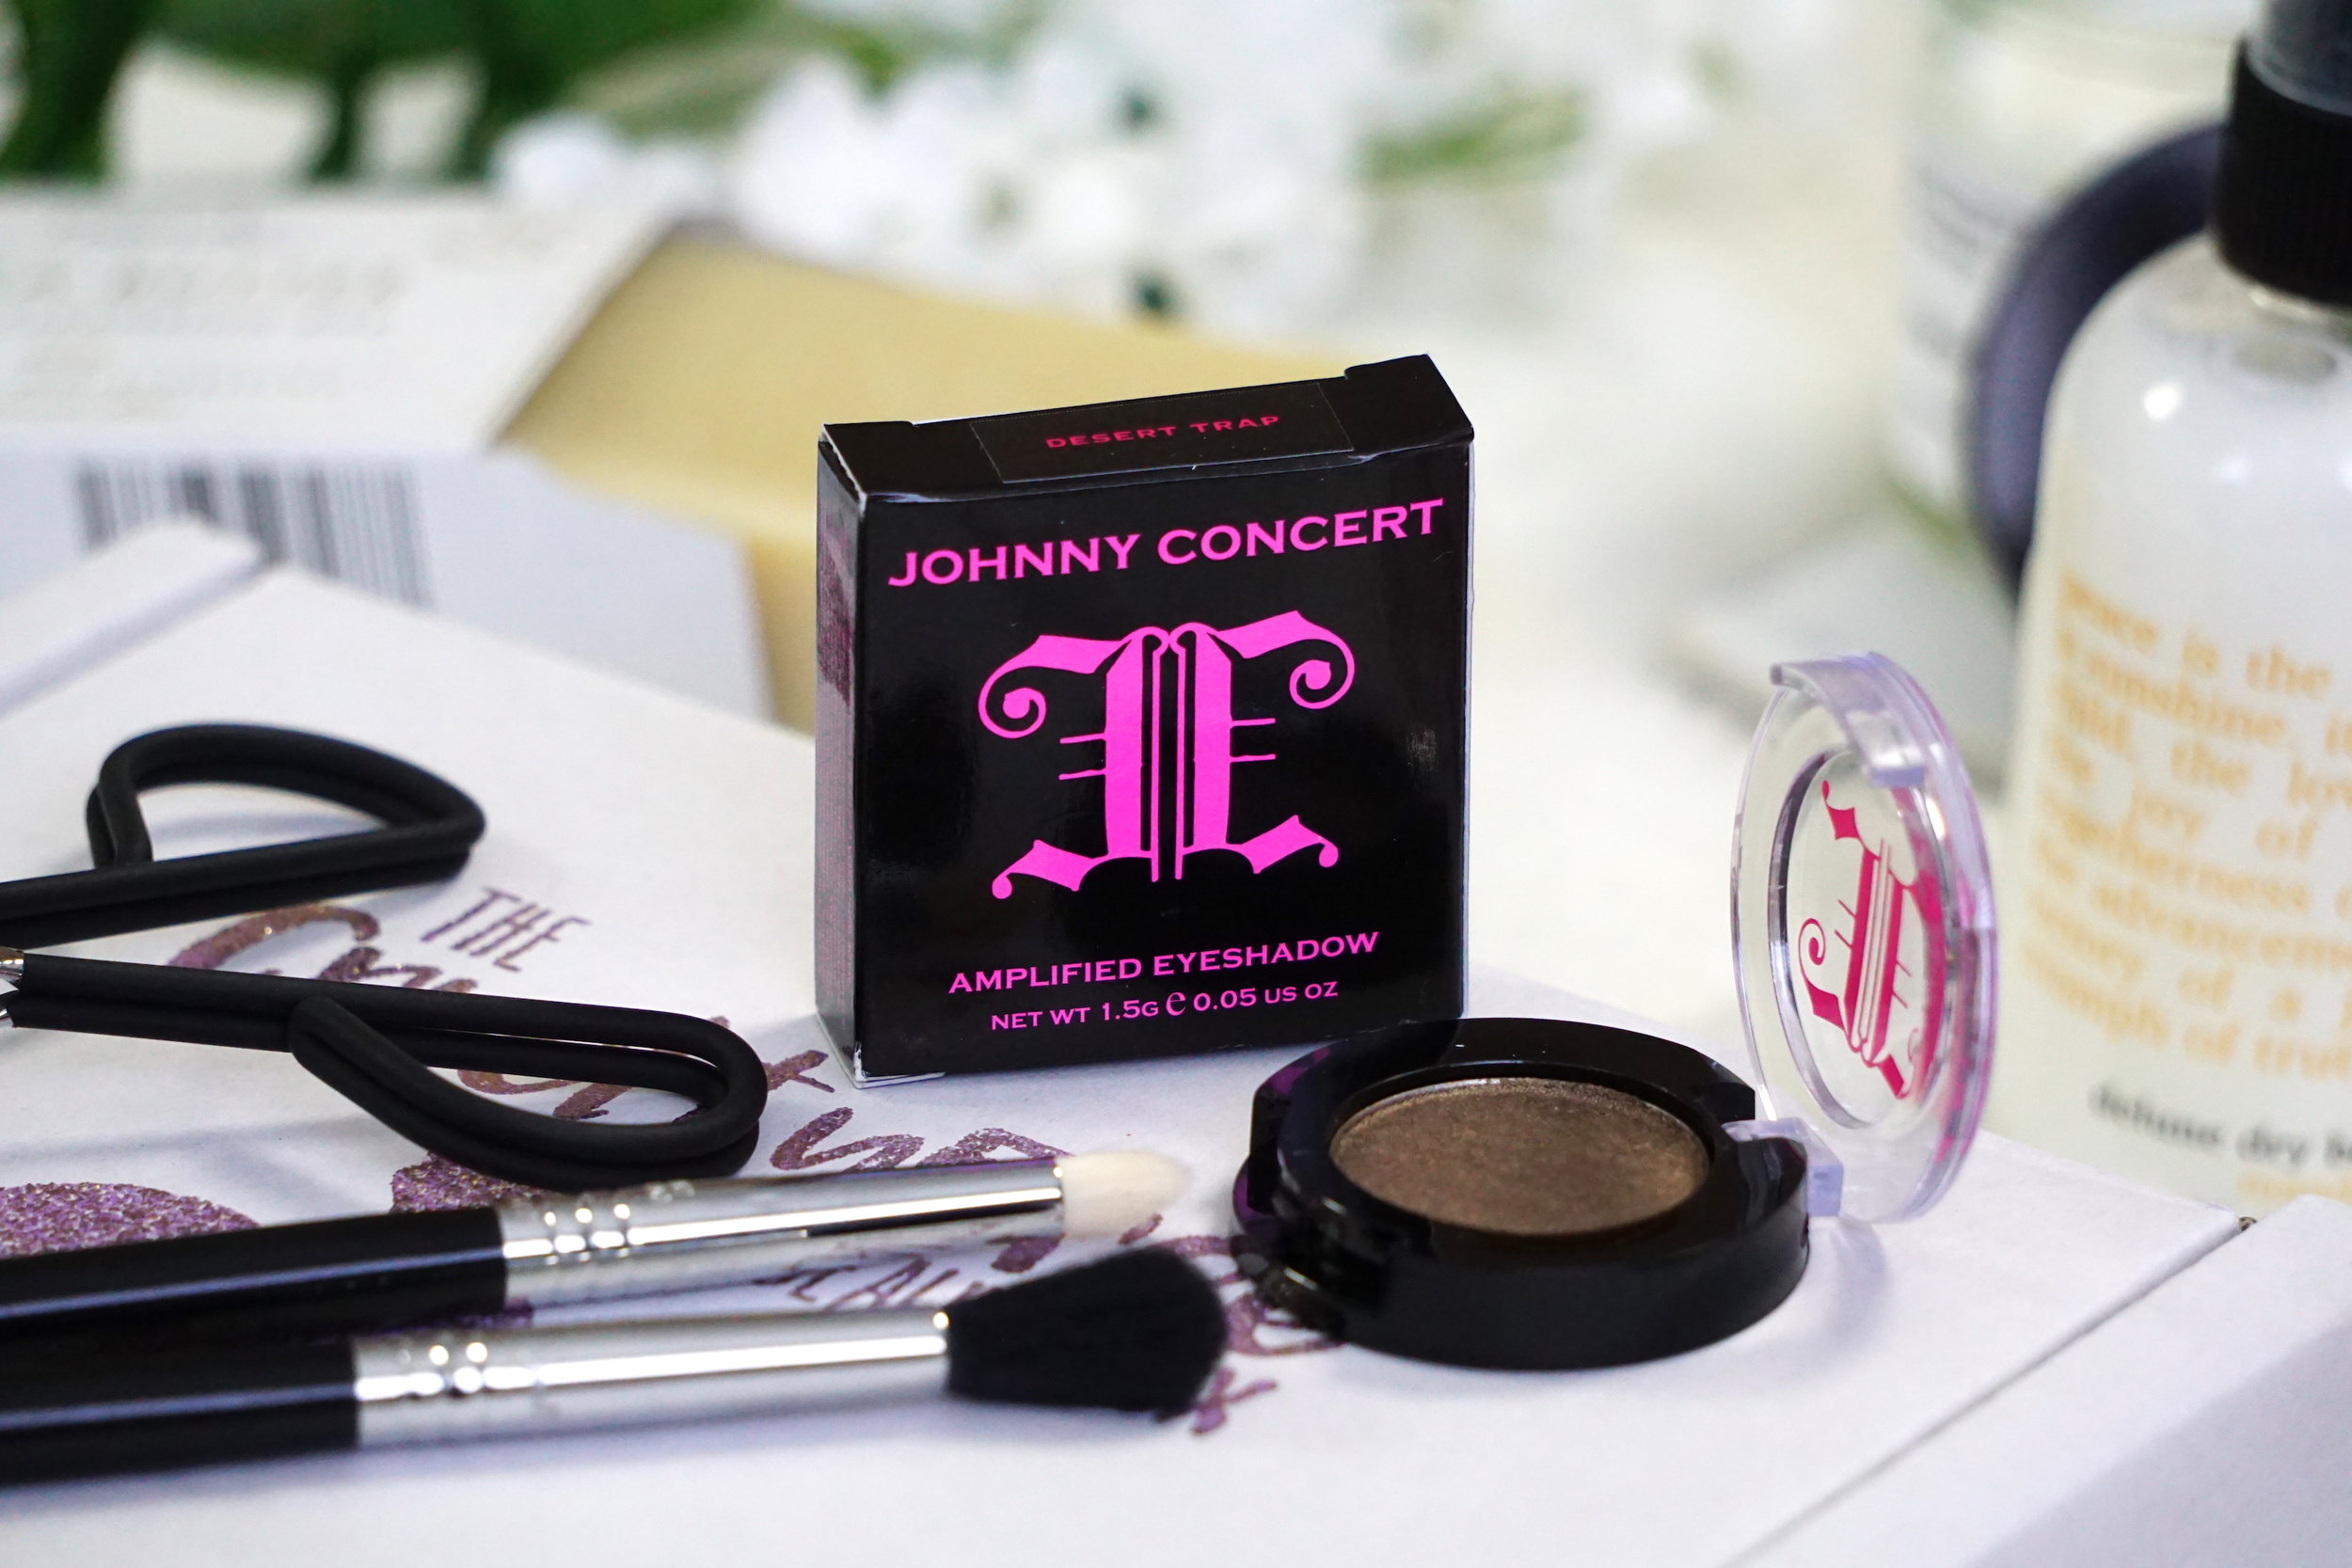 Johnny Concert Eyeshadow - I love the versatility of wet / dry eyeshadow formula's because you can create a range of looks really easily without having to switch to anything else. This brand ensure no harsh chemicals, synthetic dyes or cheap toxic fillers make their way in to their products - just intense colour.